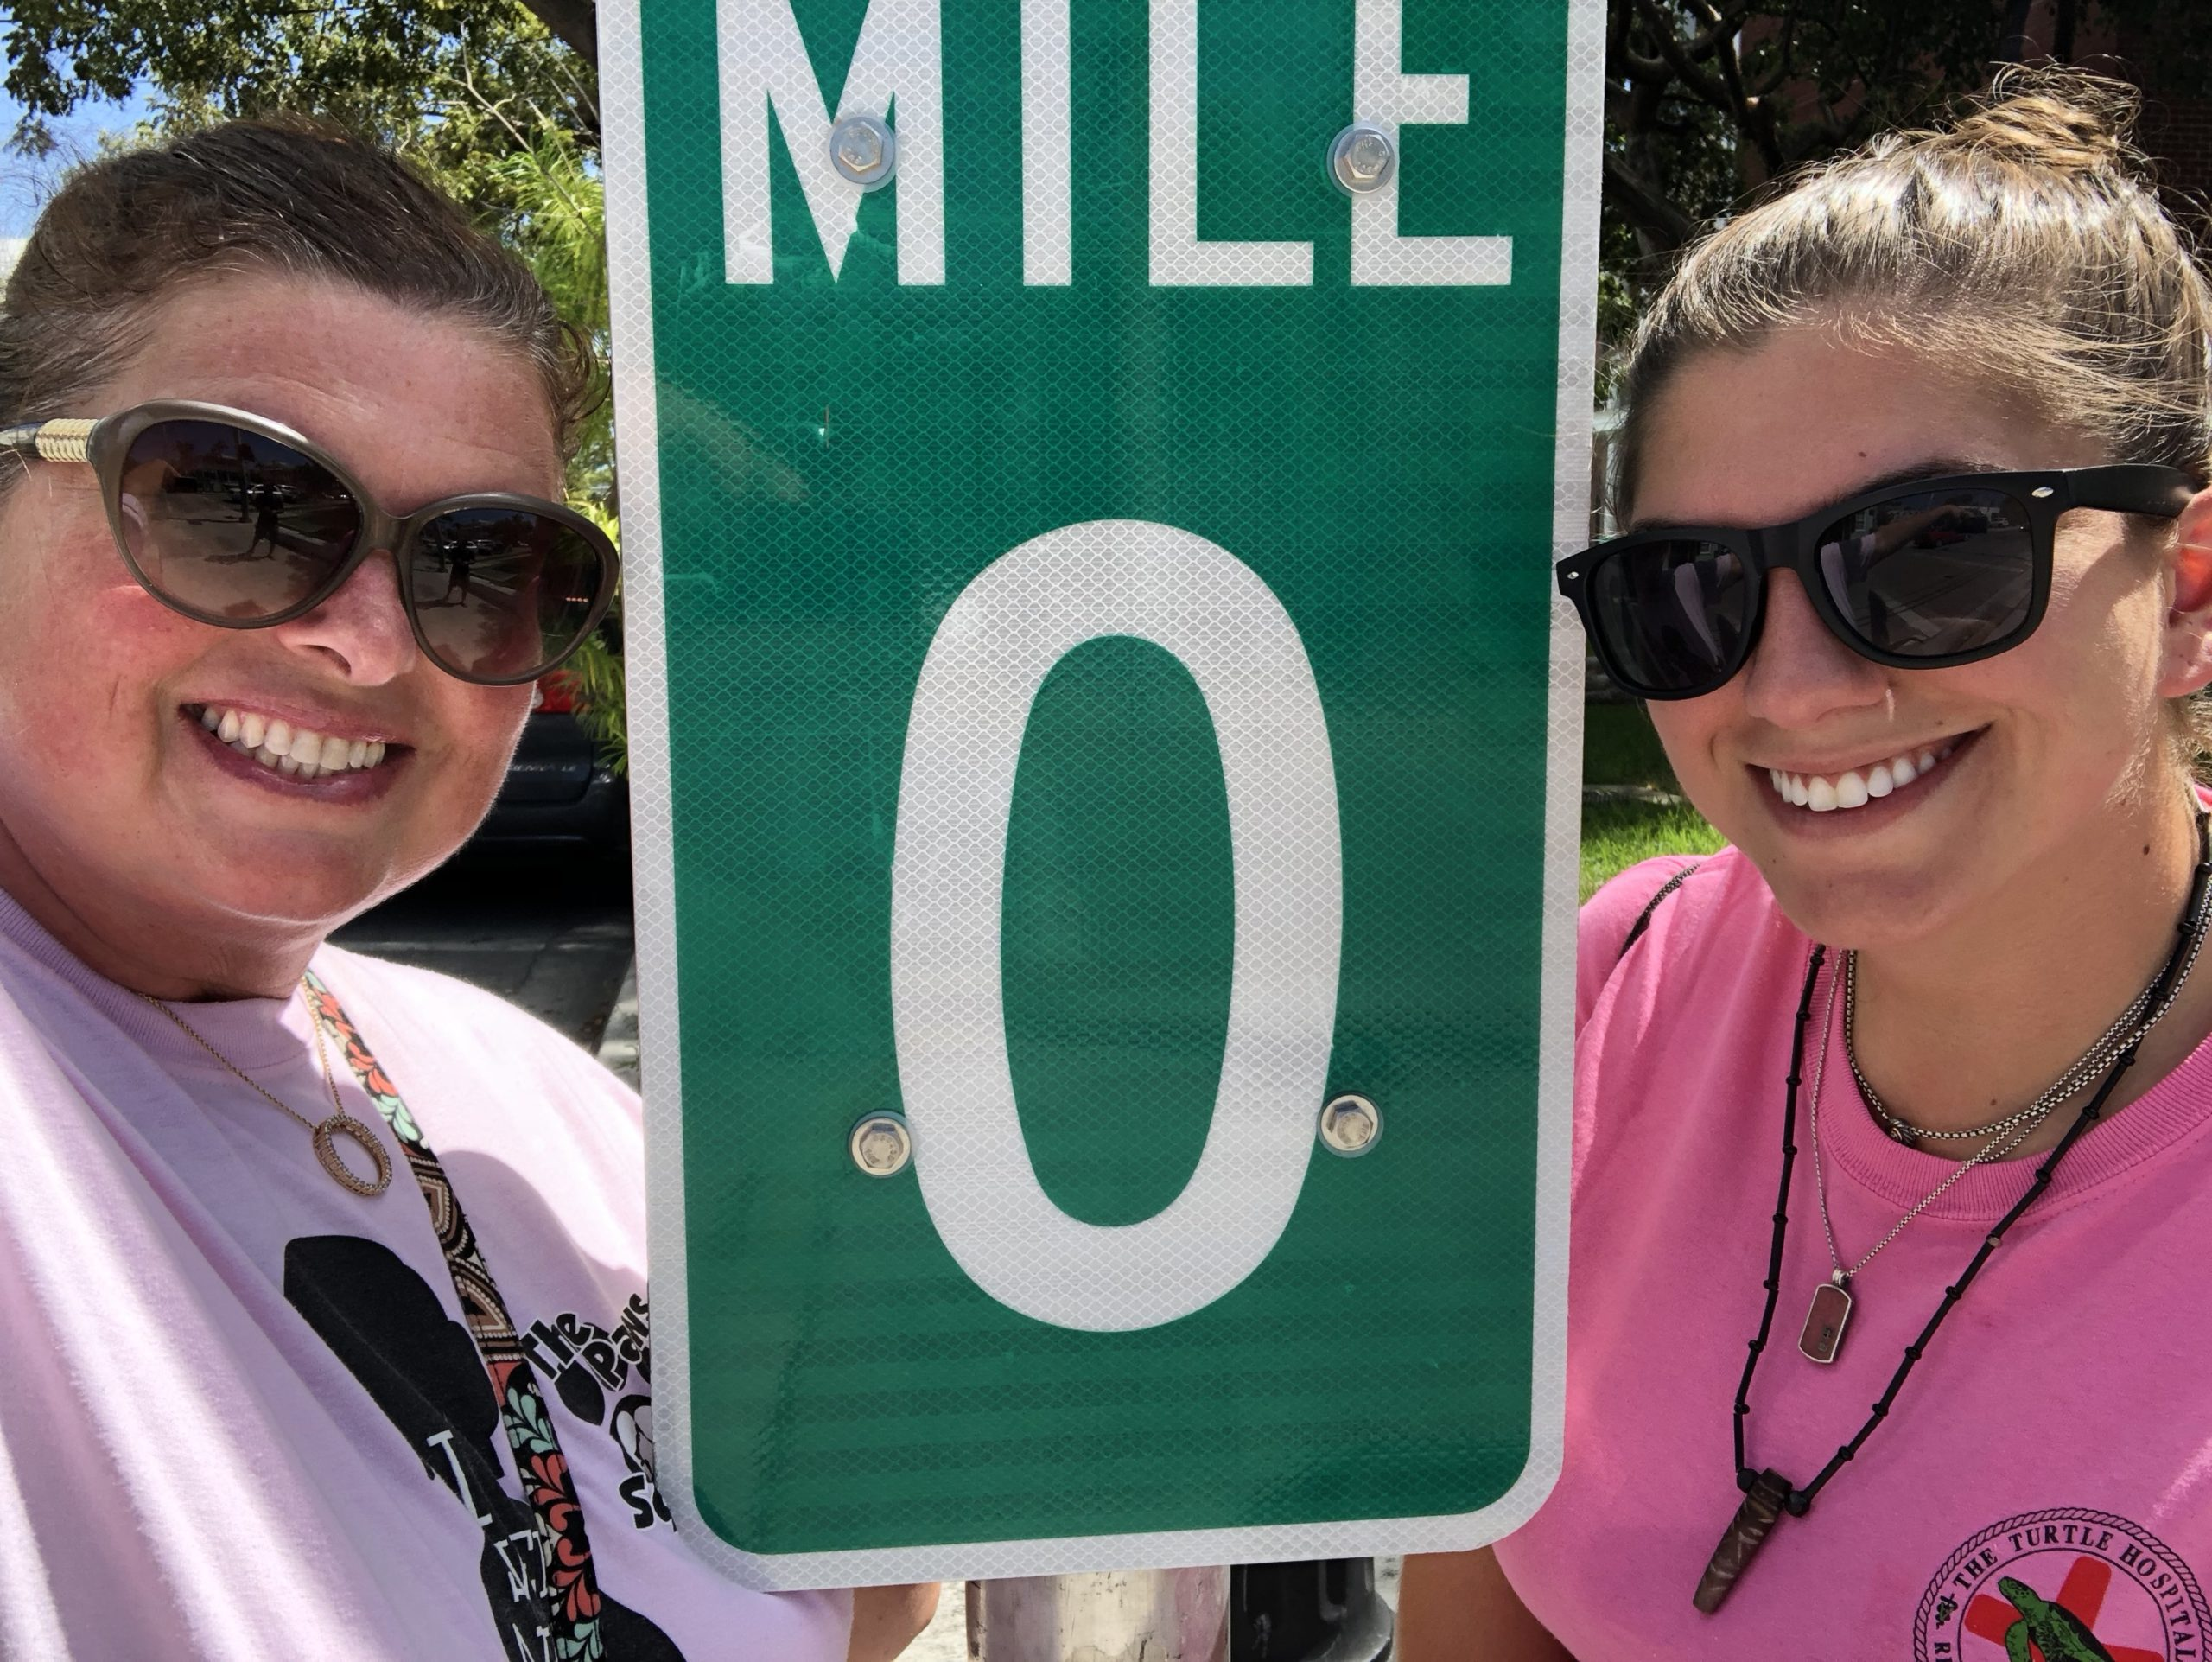 After the best Caribbean cruise, go to mile marker zero at key west